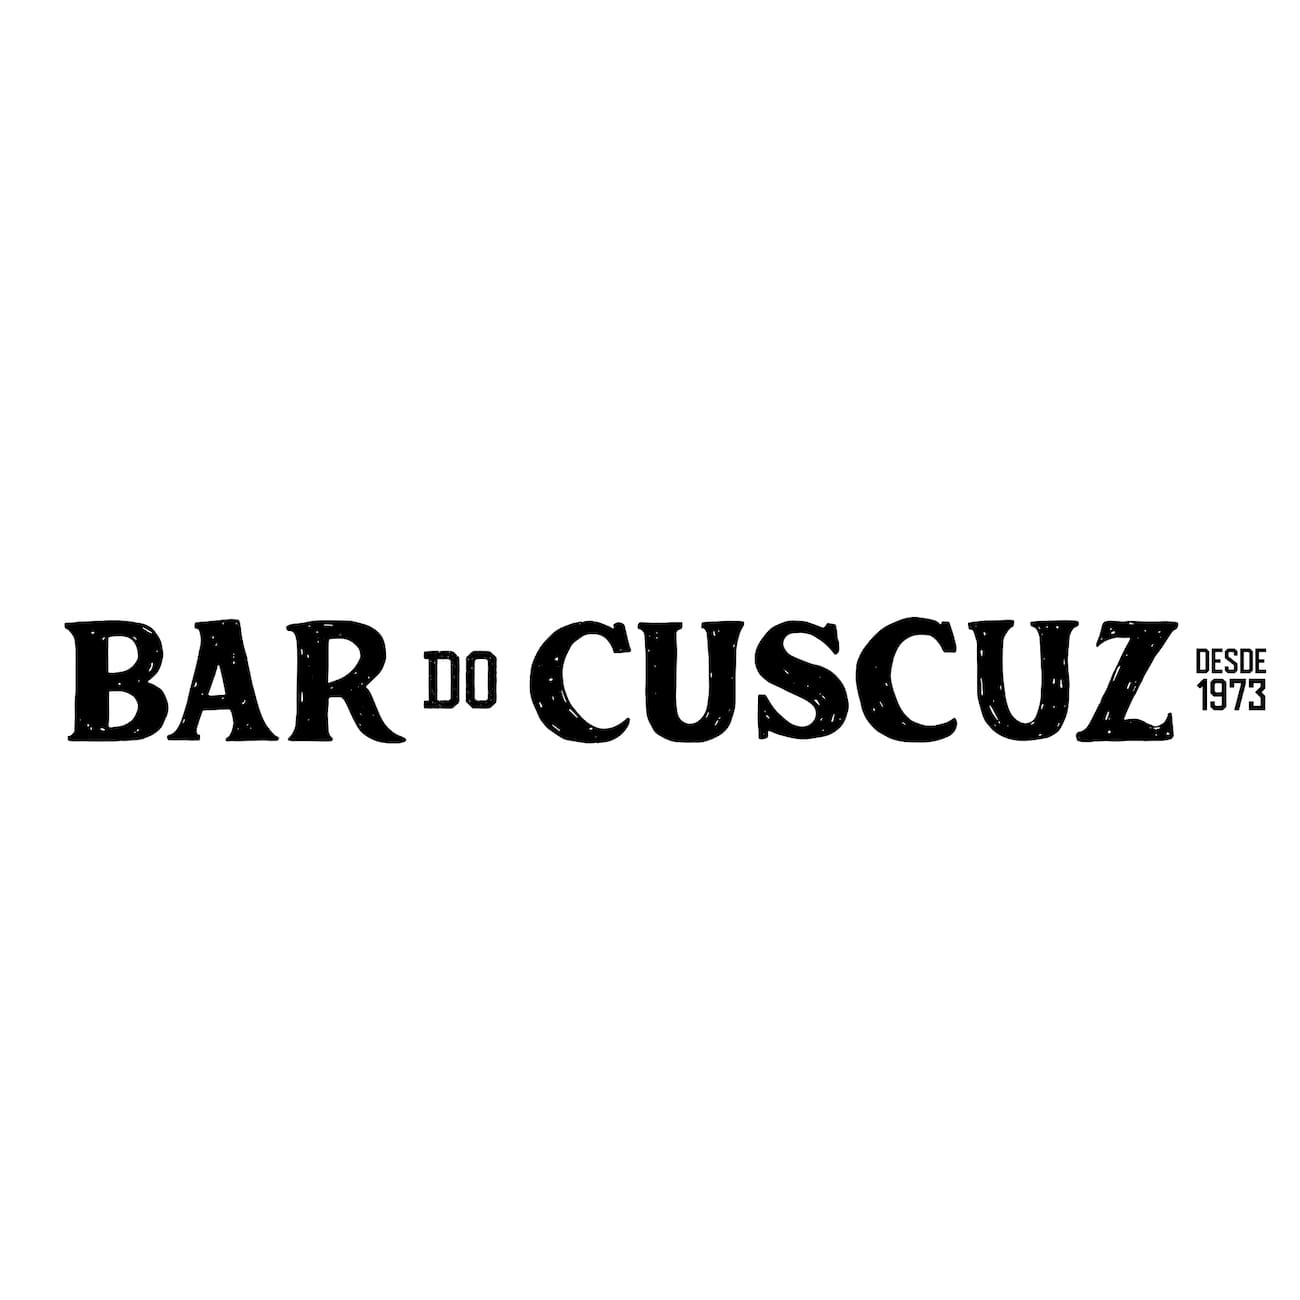 Bar do Cuscuz